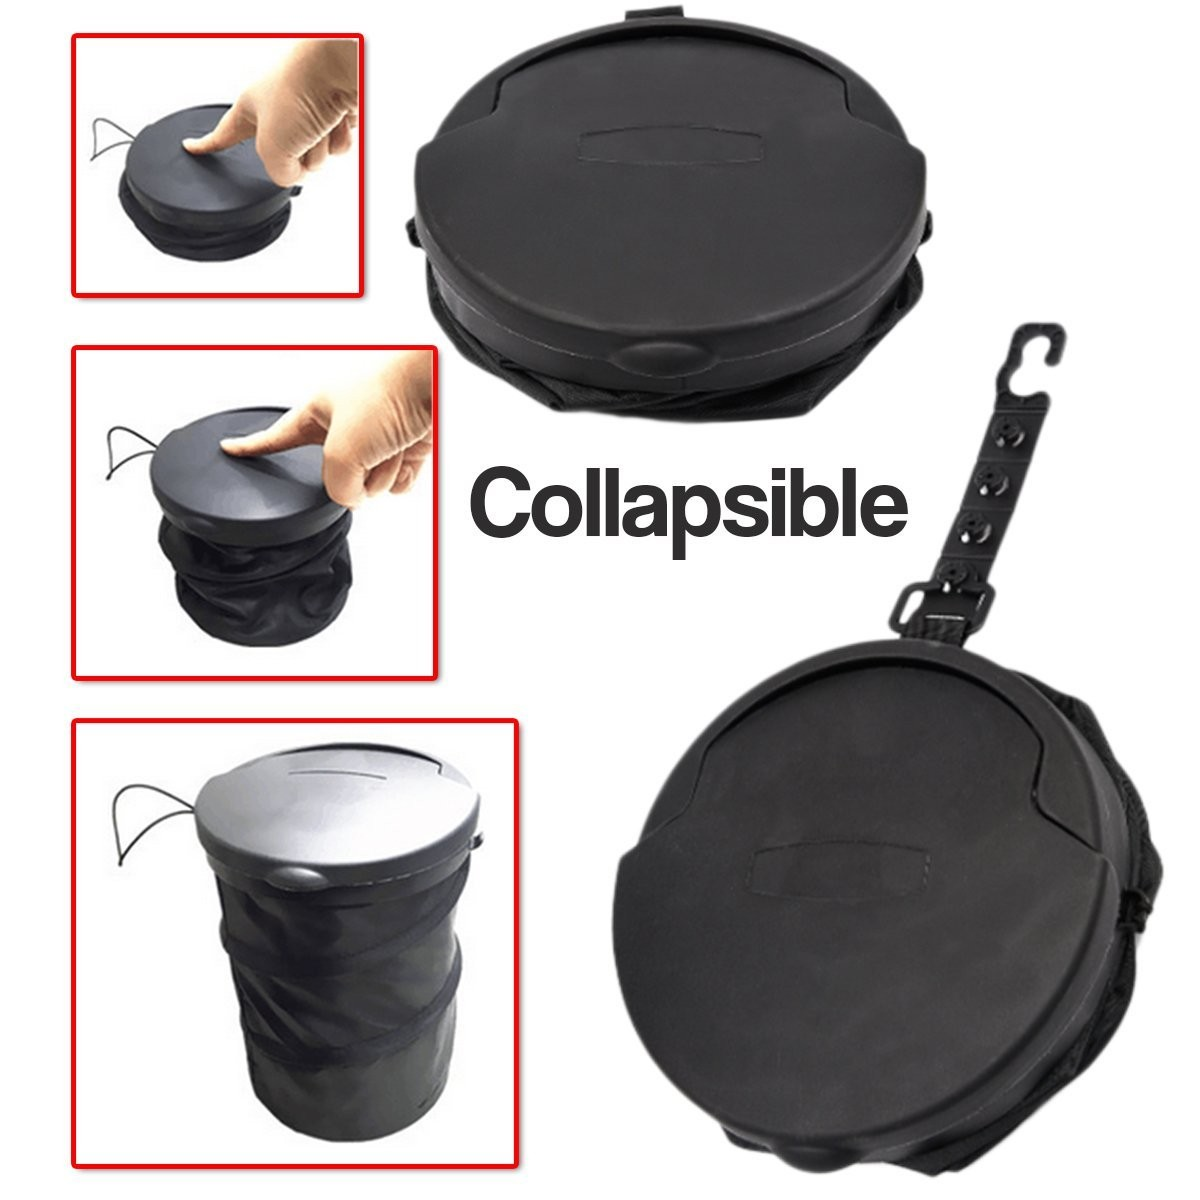 Collapsible Trash Cans Auto Accessories Headlight Bulbs Car Gifts Zone Tech